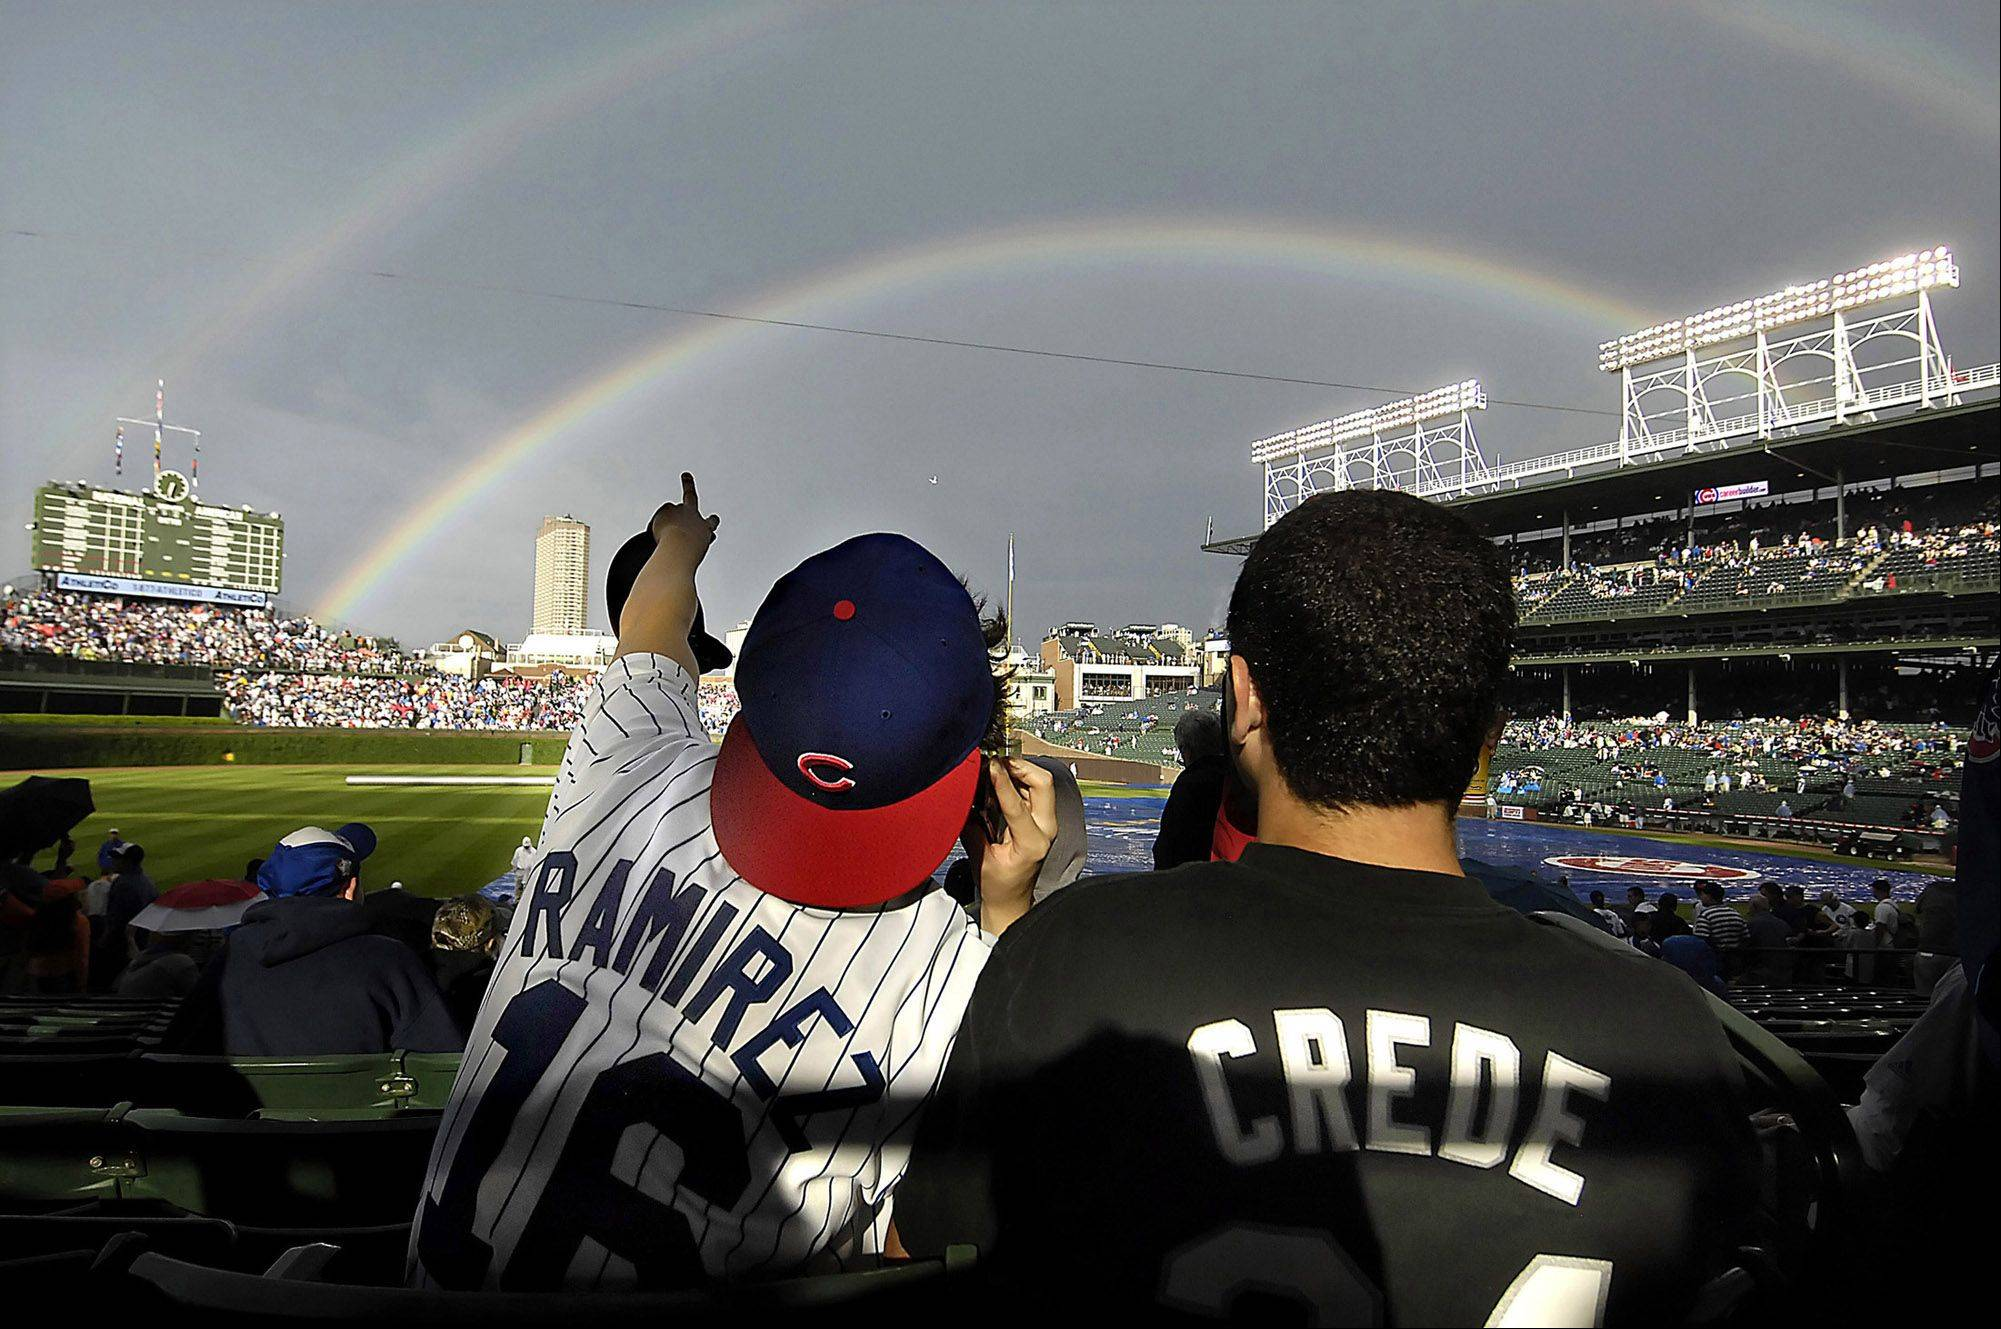 Cubs fan Michael Kiely and Sox fan Michael Gerb watch a double rainbow appear over Wrigley Field before the cross-town rivalry.